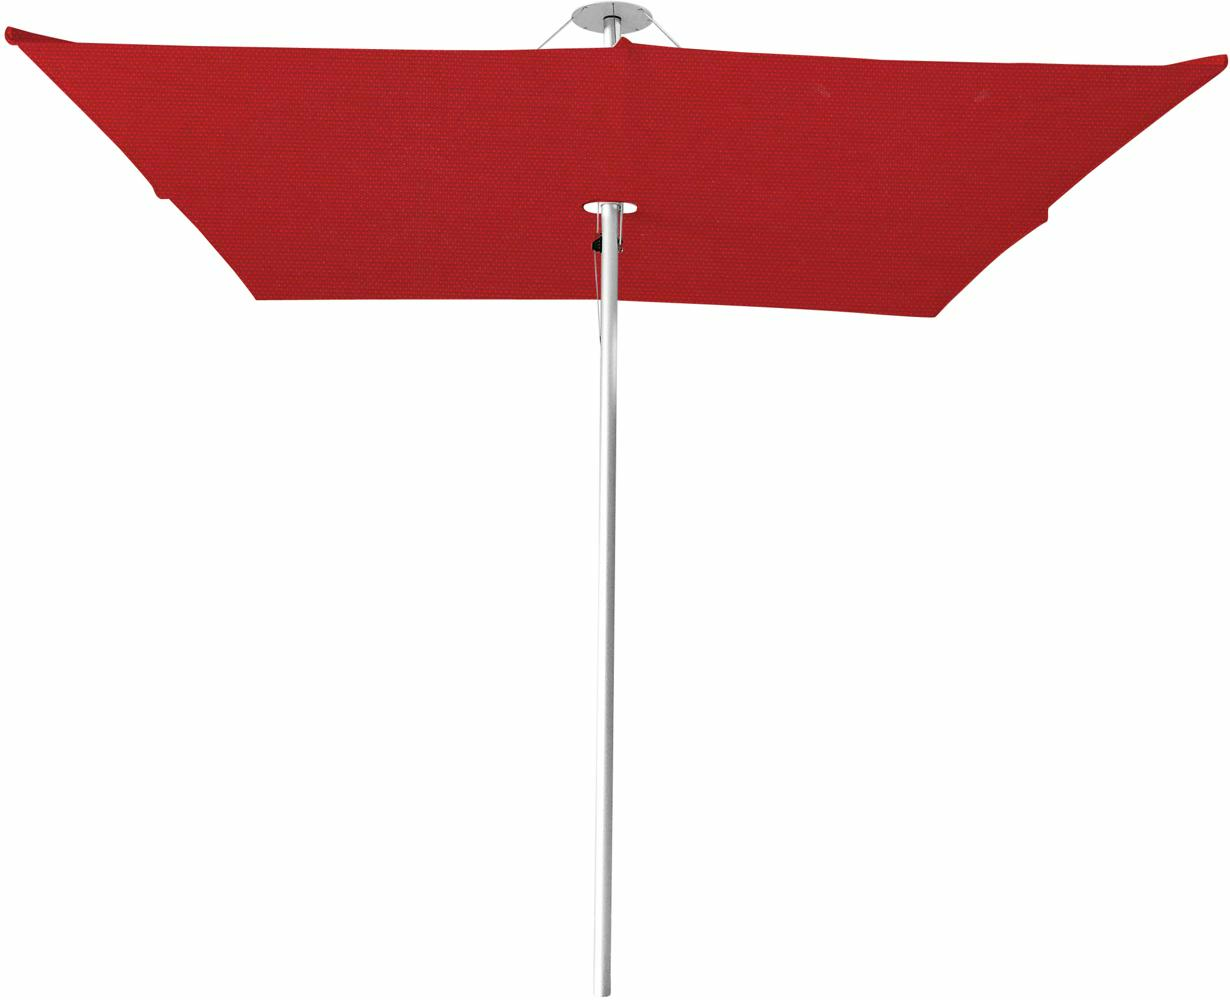 Infina center post umbrella, 3 m square, with frame in Aluminum and Solidum Pepper canopy.